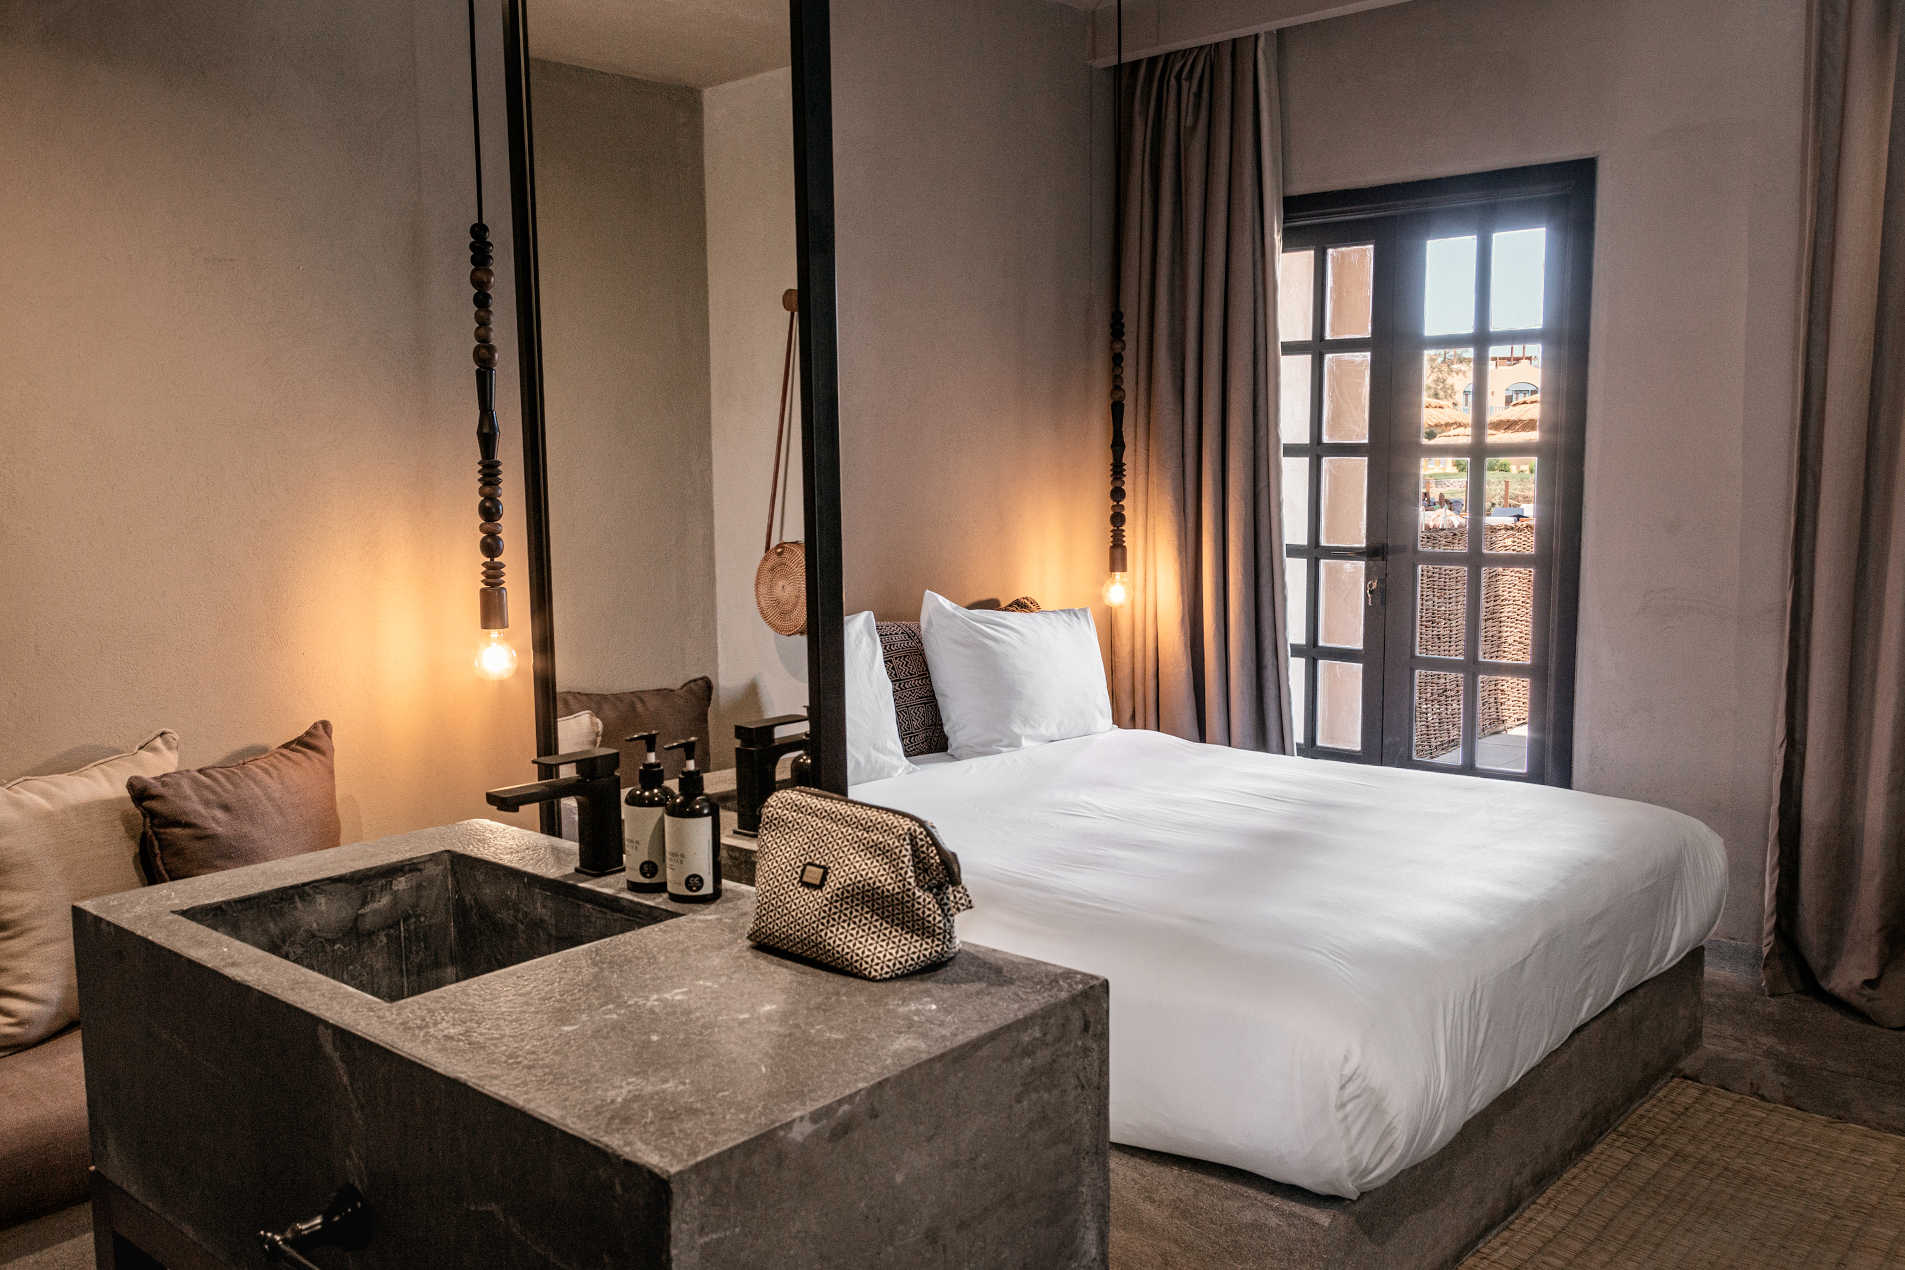 The kingbed room in Cook's Club with luxury beddings and a french door with a mirror for El Gouna luxury accommodation